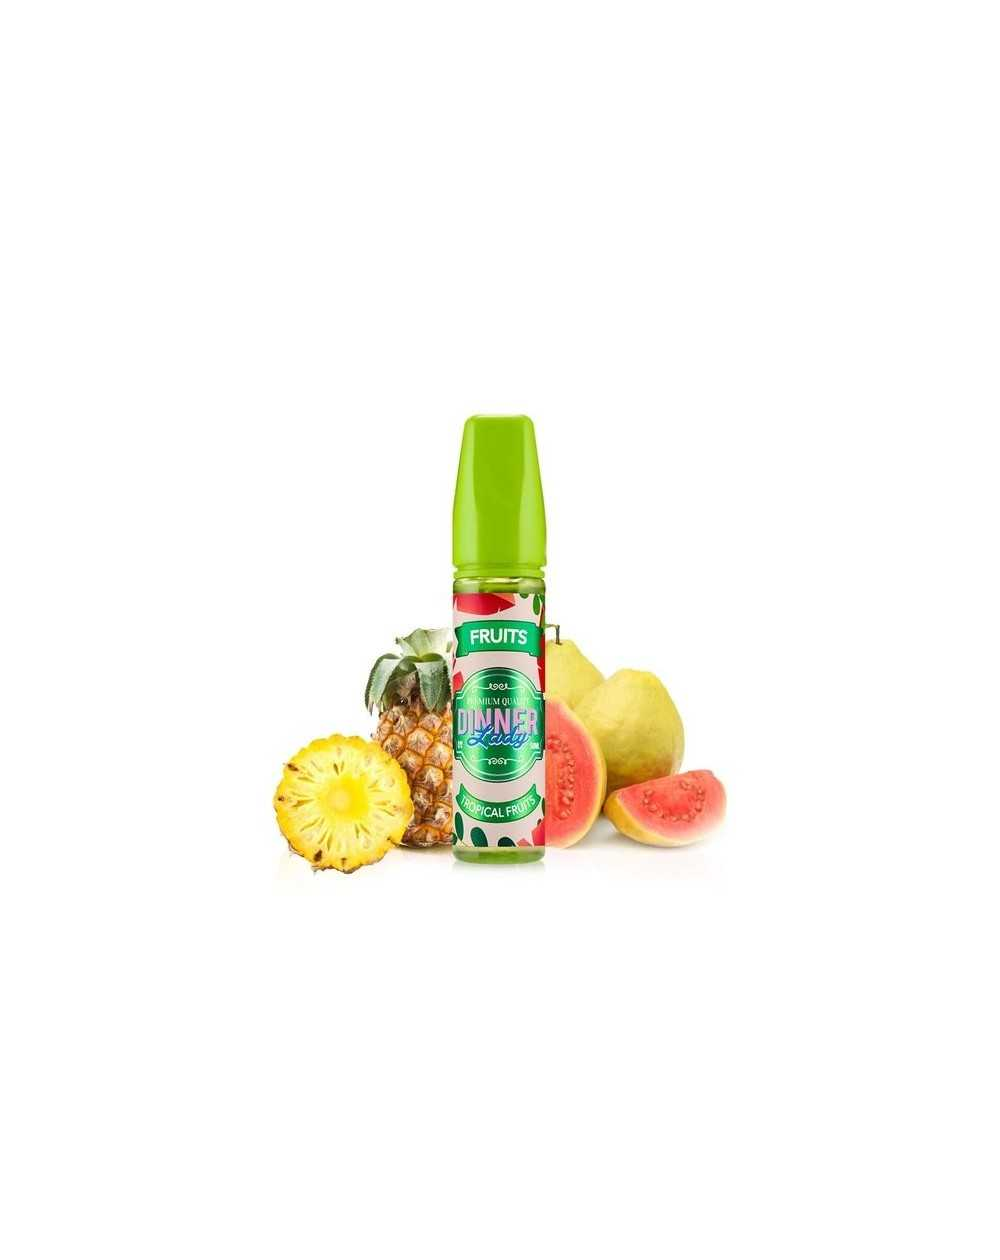 Tropical Fruits 50ml - Dinner Lady Fruits-1